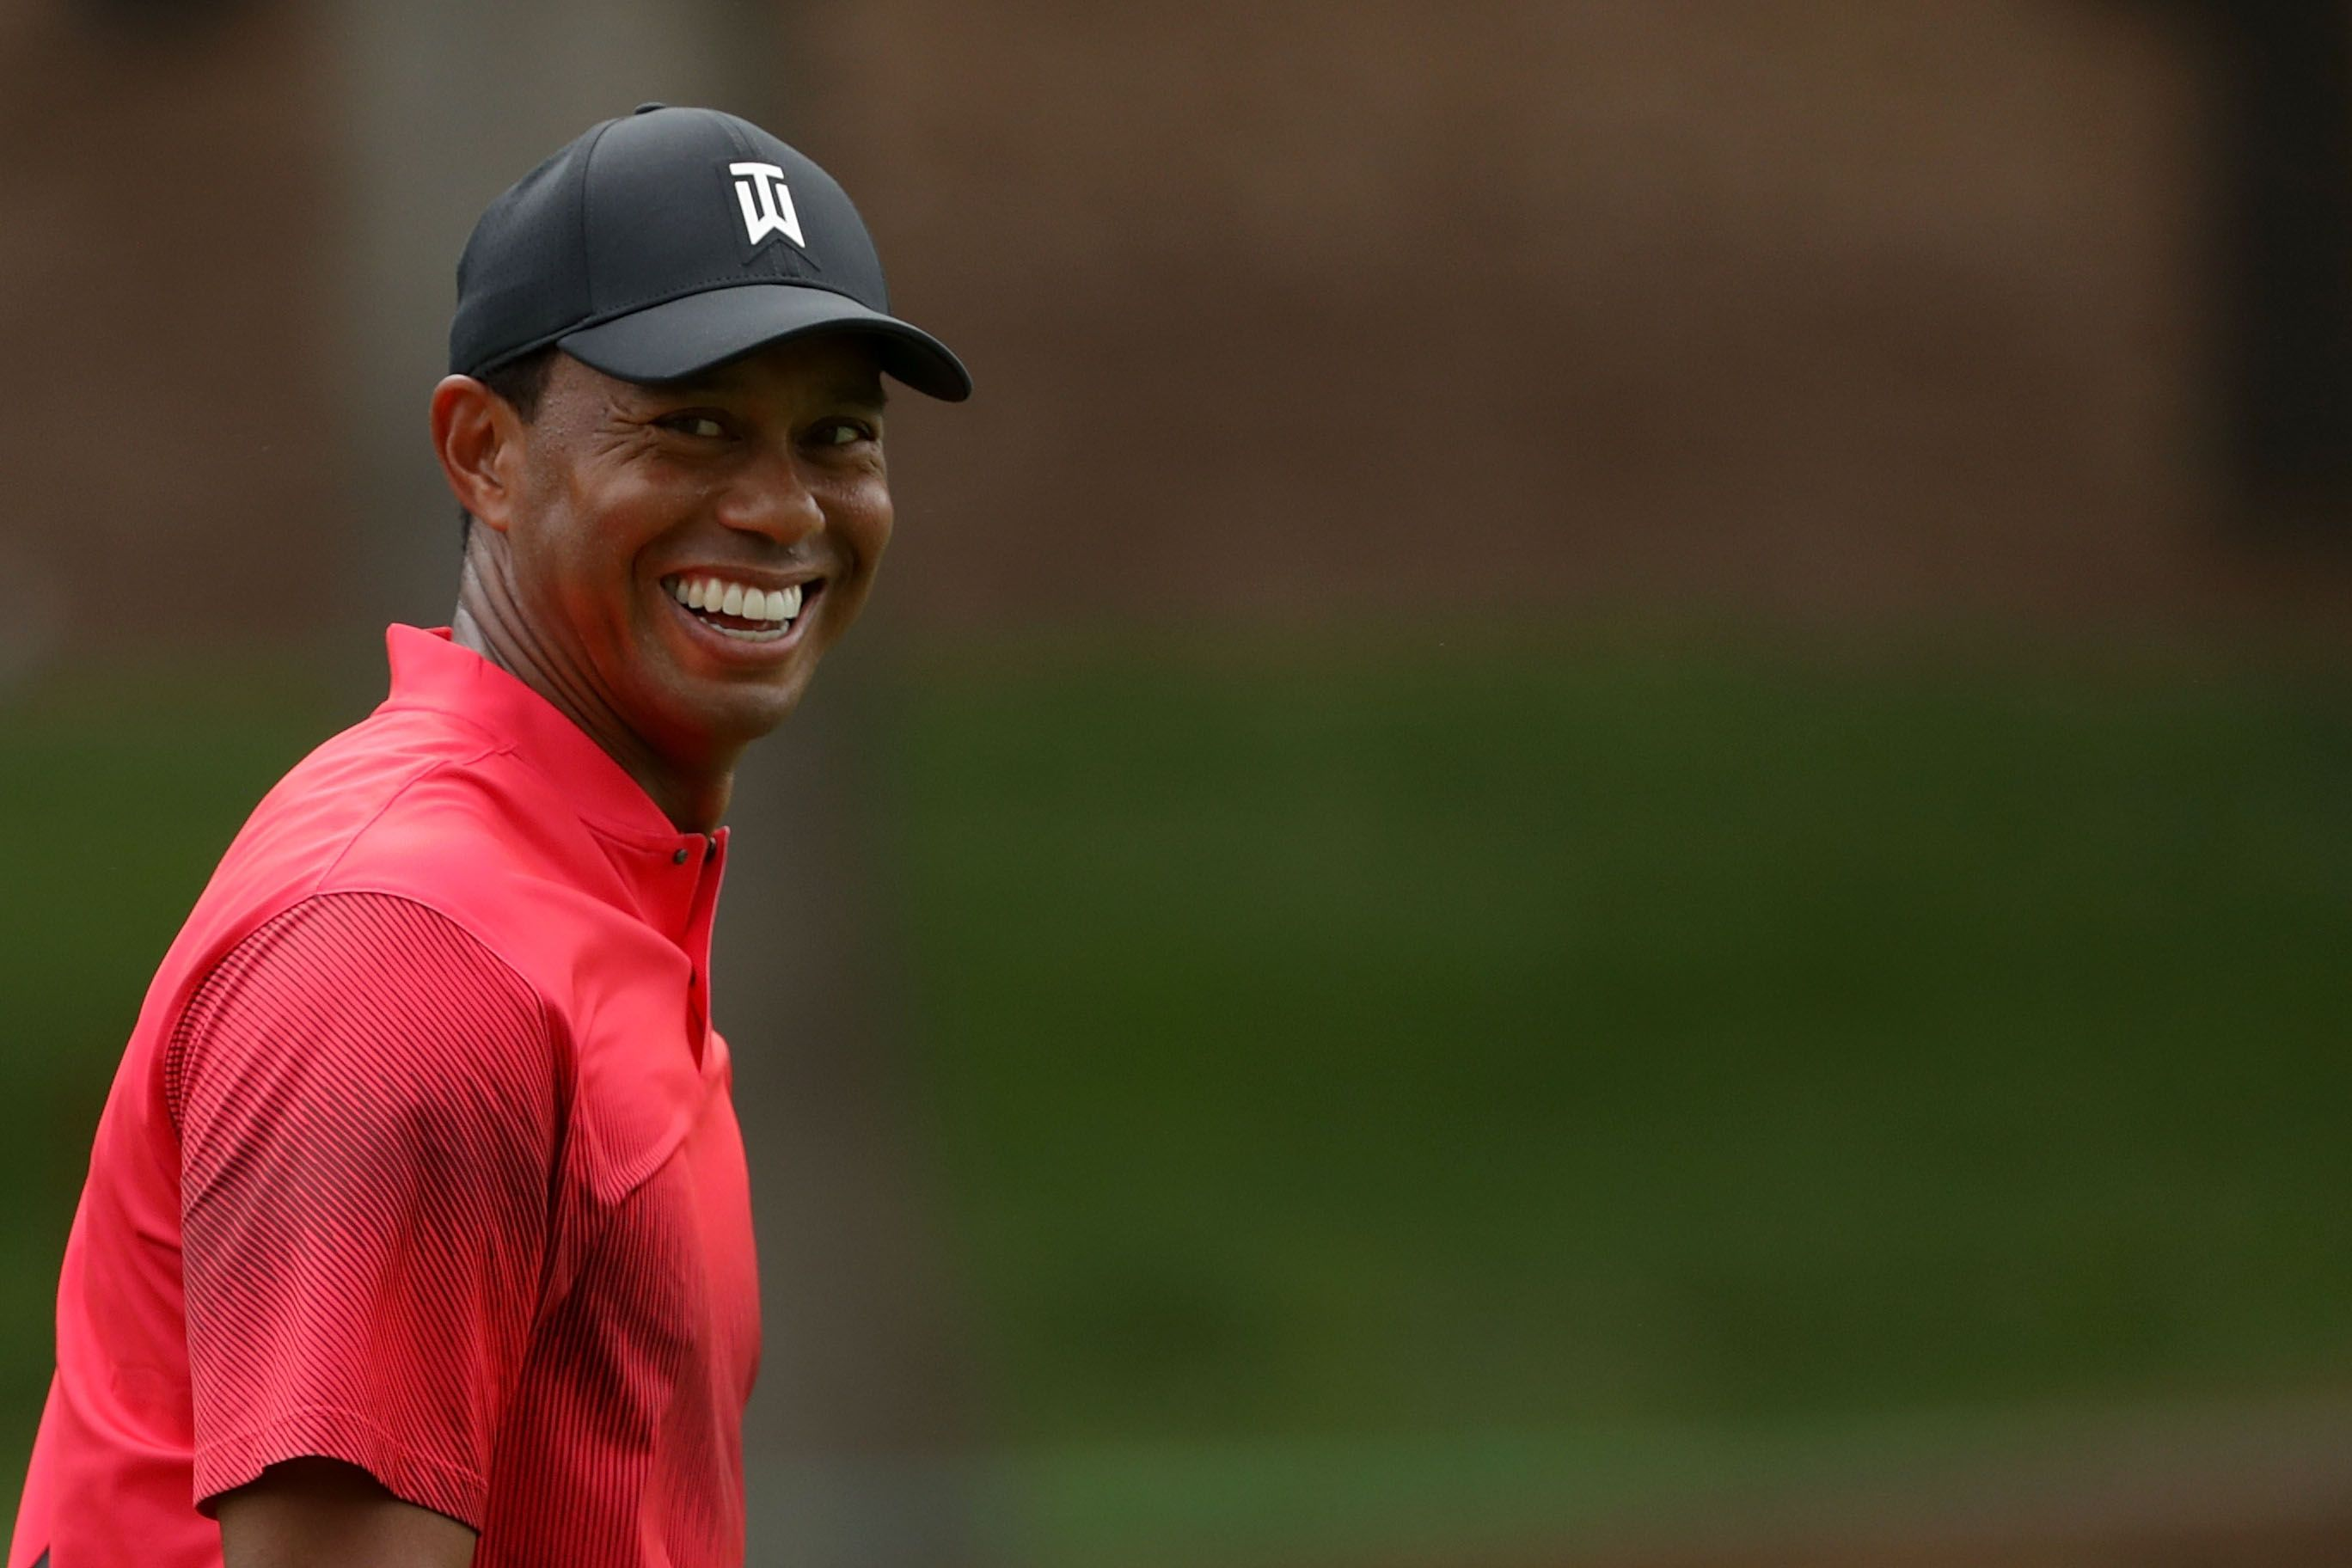 Tiger Woods The insane golf workout routine he swears by